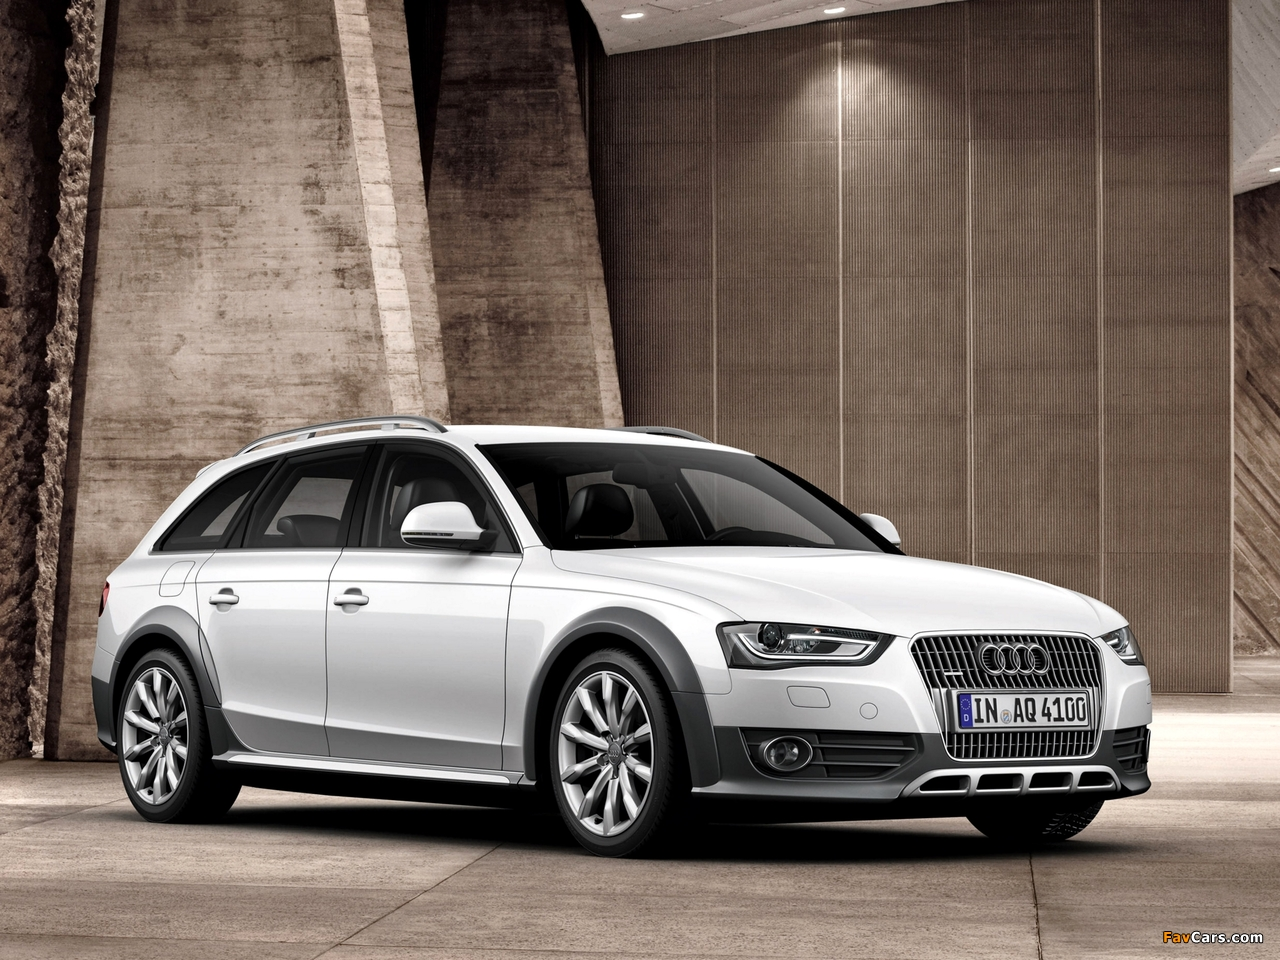 photos of audi a4 allroad 3 0 tdi quattro b8 8k 2012 1280x960. Black Bedroom Furniture Sets. Home Design Ideas